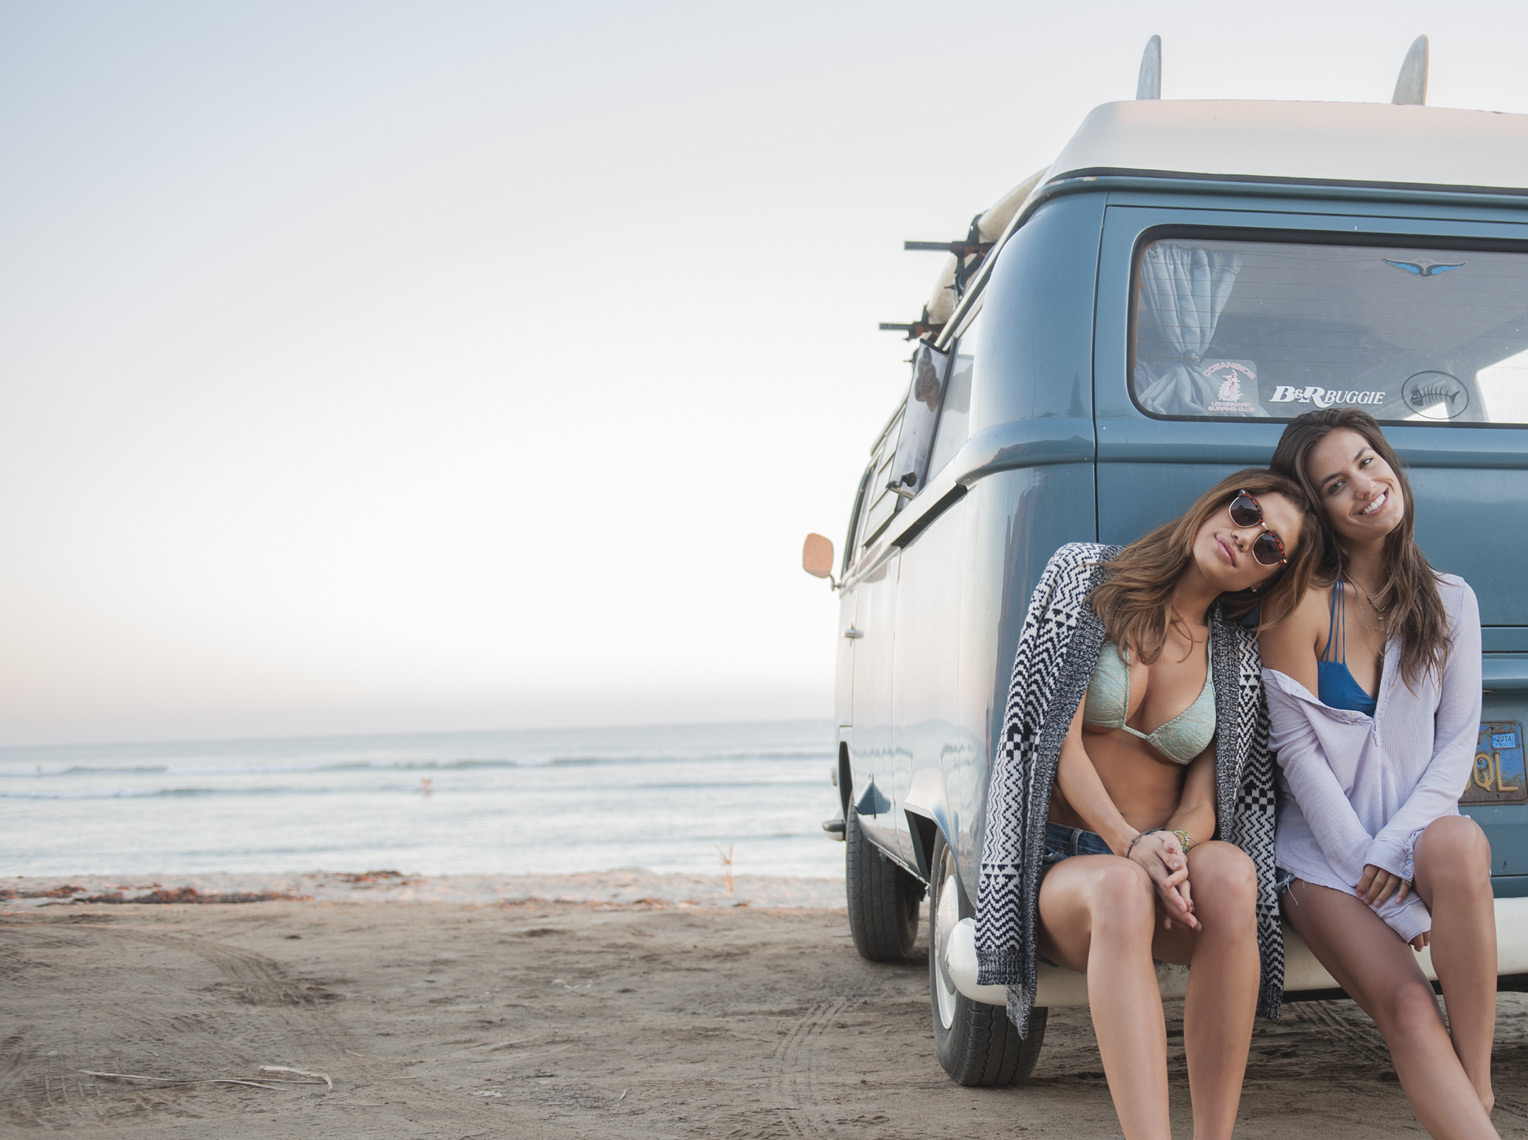 Christopher Nelson Photography|BMW Mini Cooper|Lifestyle|San Onofre Beach